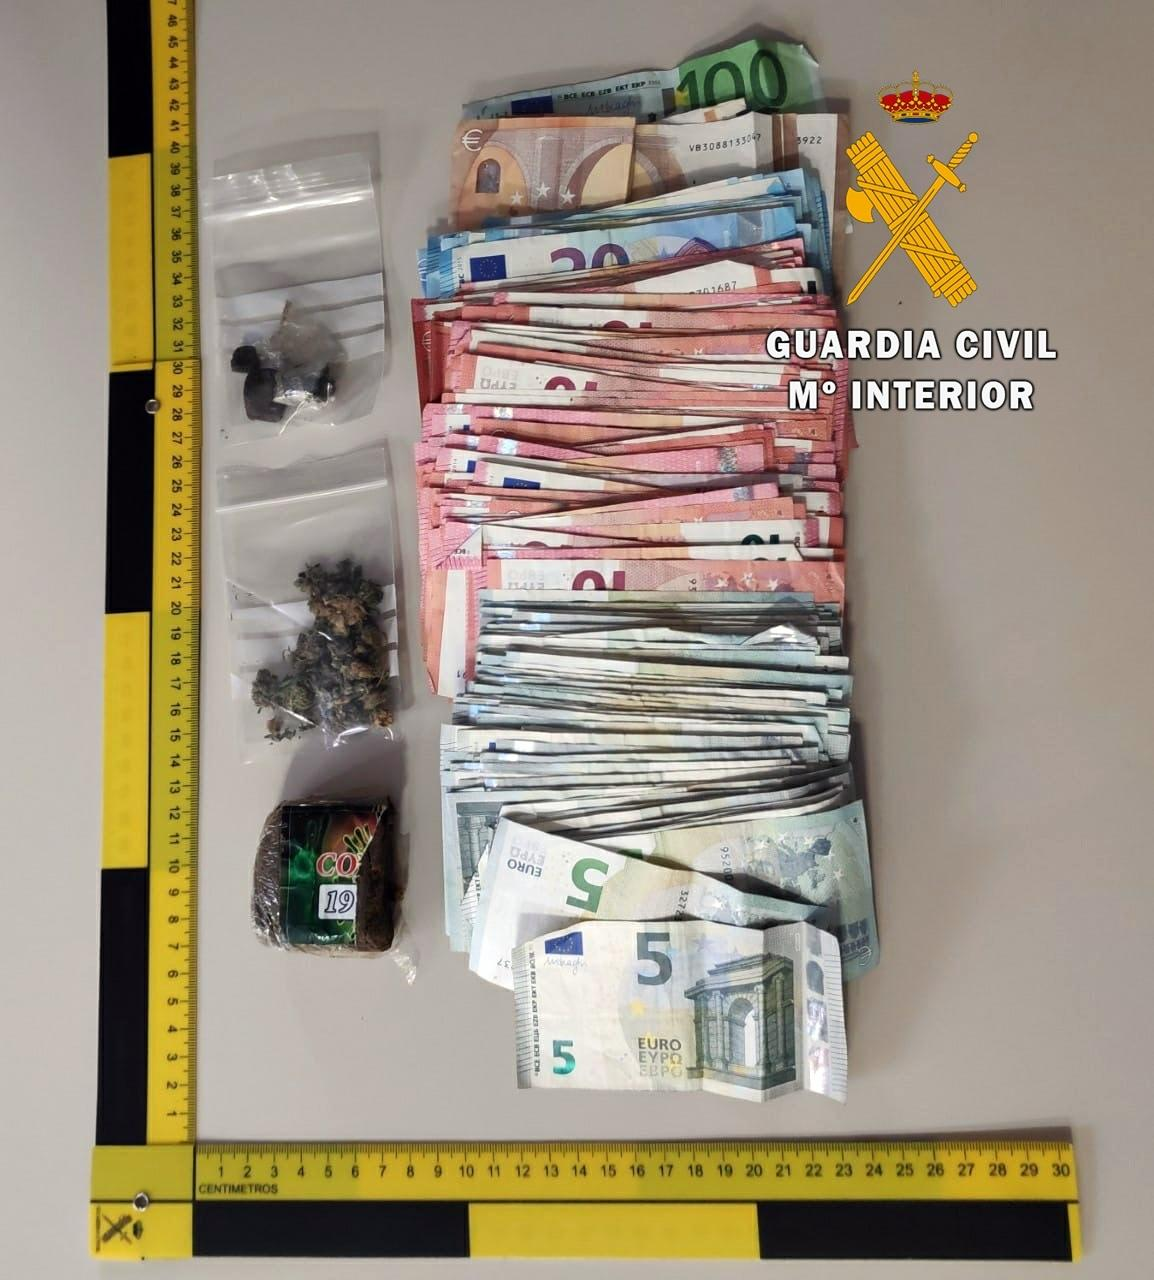 Dinero y drogas intervenidos. Guardia Civil